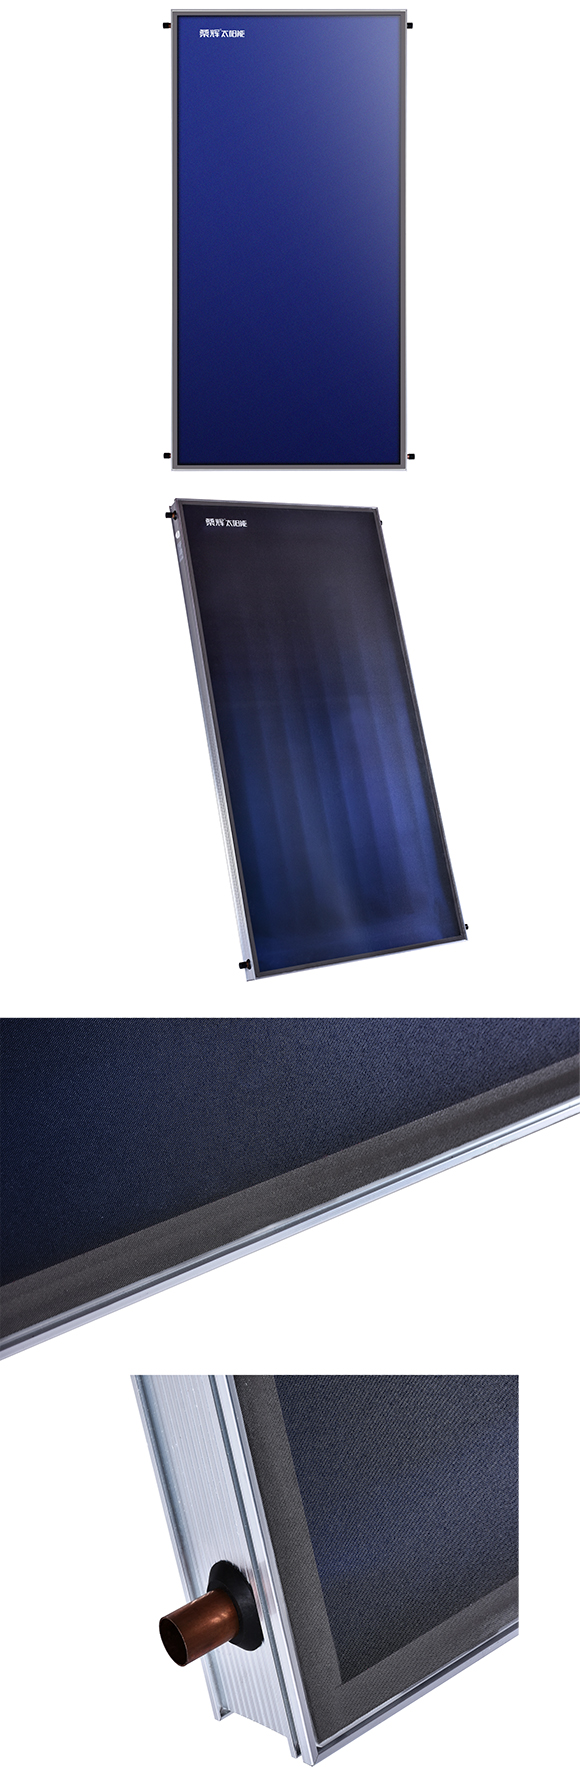 SHe-BE Green Energy Solar Collector Hot Water Heater 8 Copper Tubes For Pool/Spa/Home/Hotel